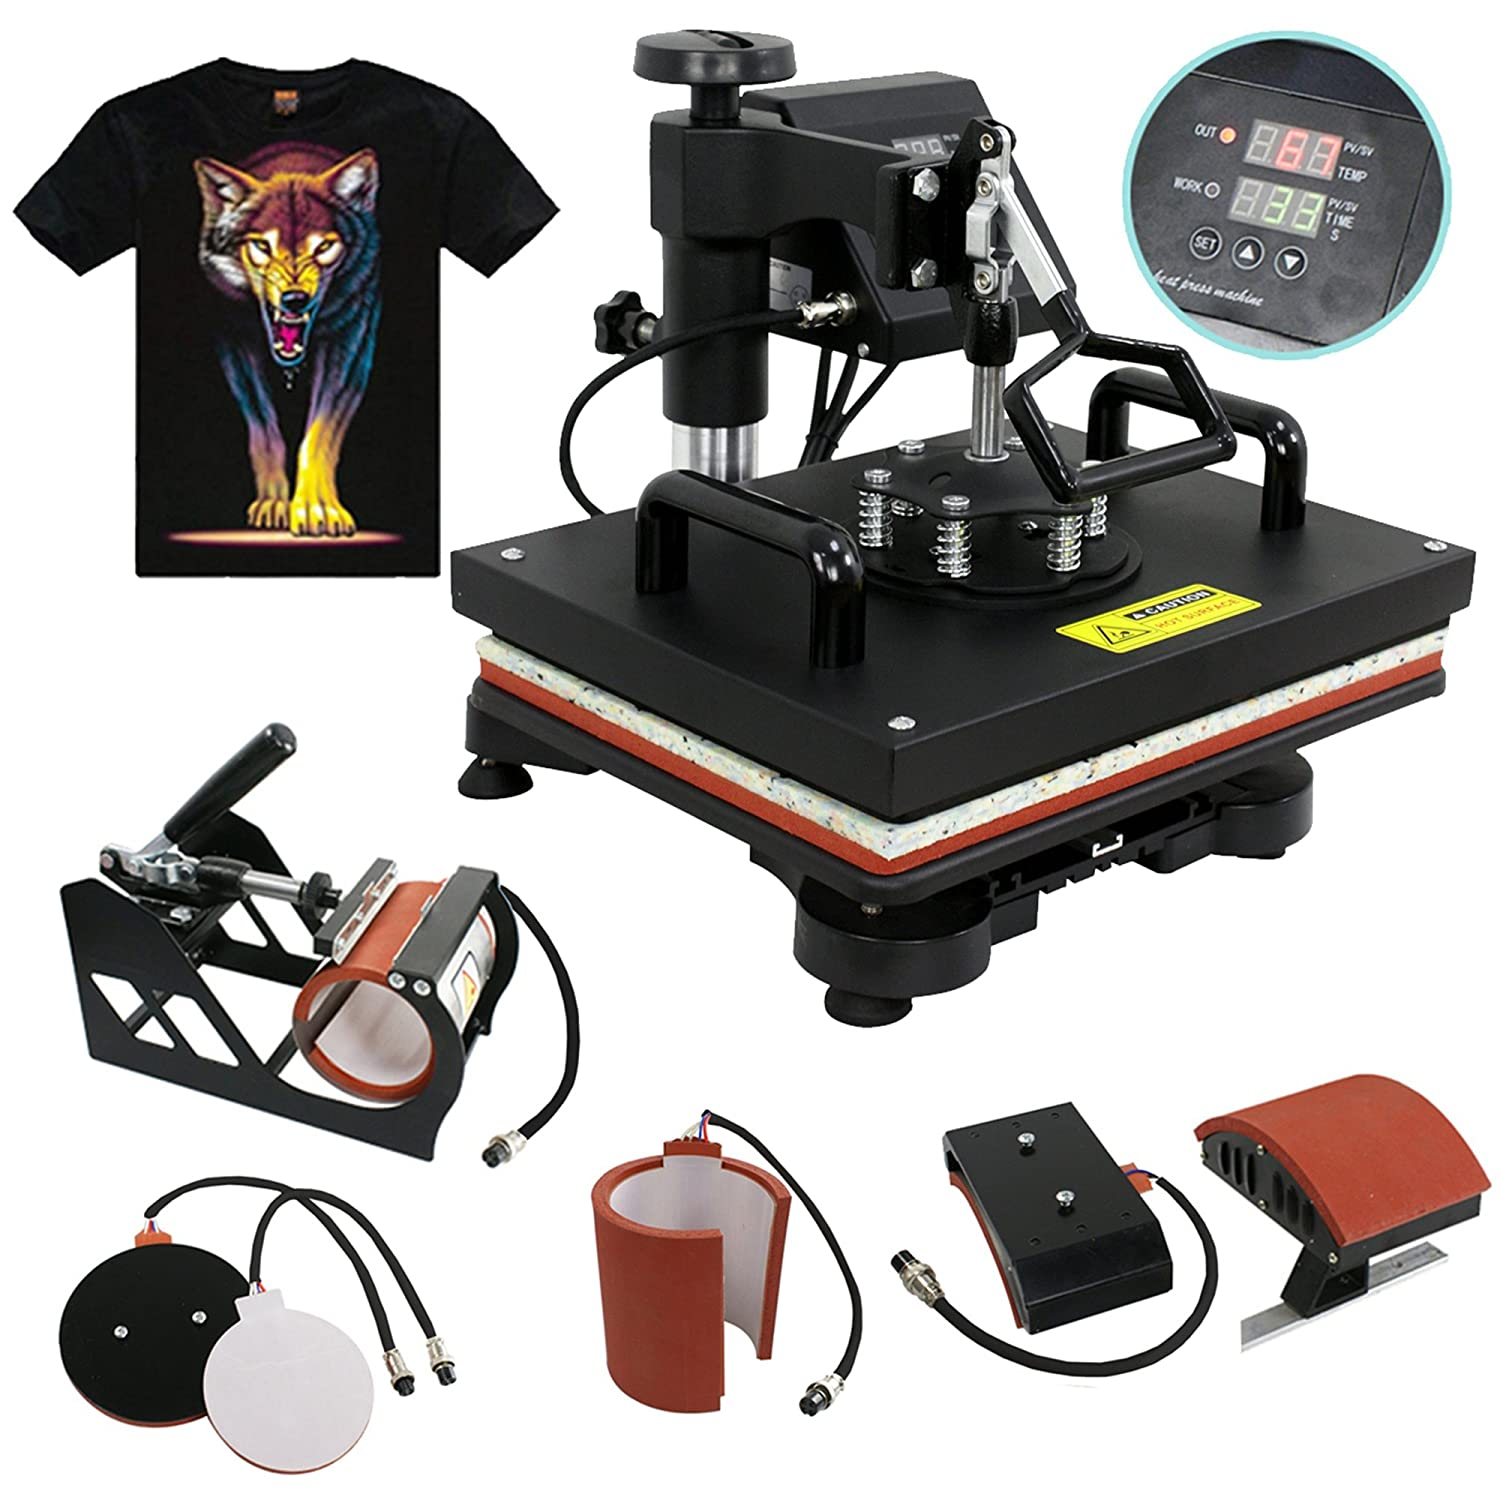 F2C 5 in 1 Professional Digital Transfer Sublimation Swing-Away 360-degree Rotation Heat Press Machine Hat/Mug/Plate/Cap/T-Shirt Multifunction Black